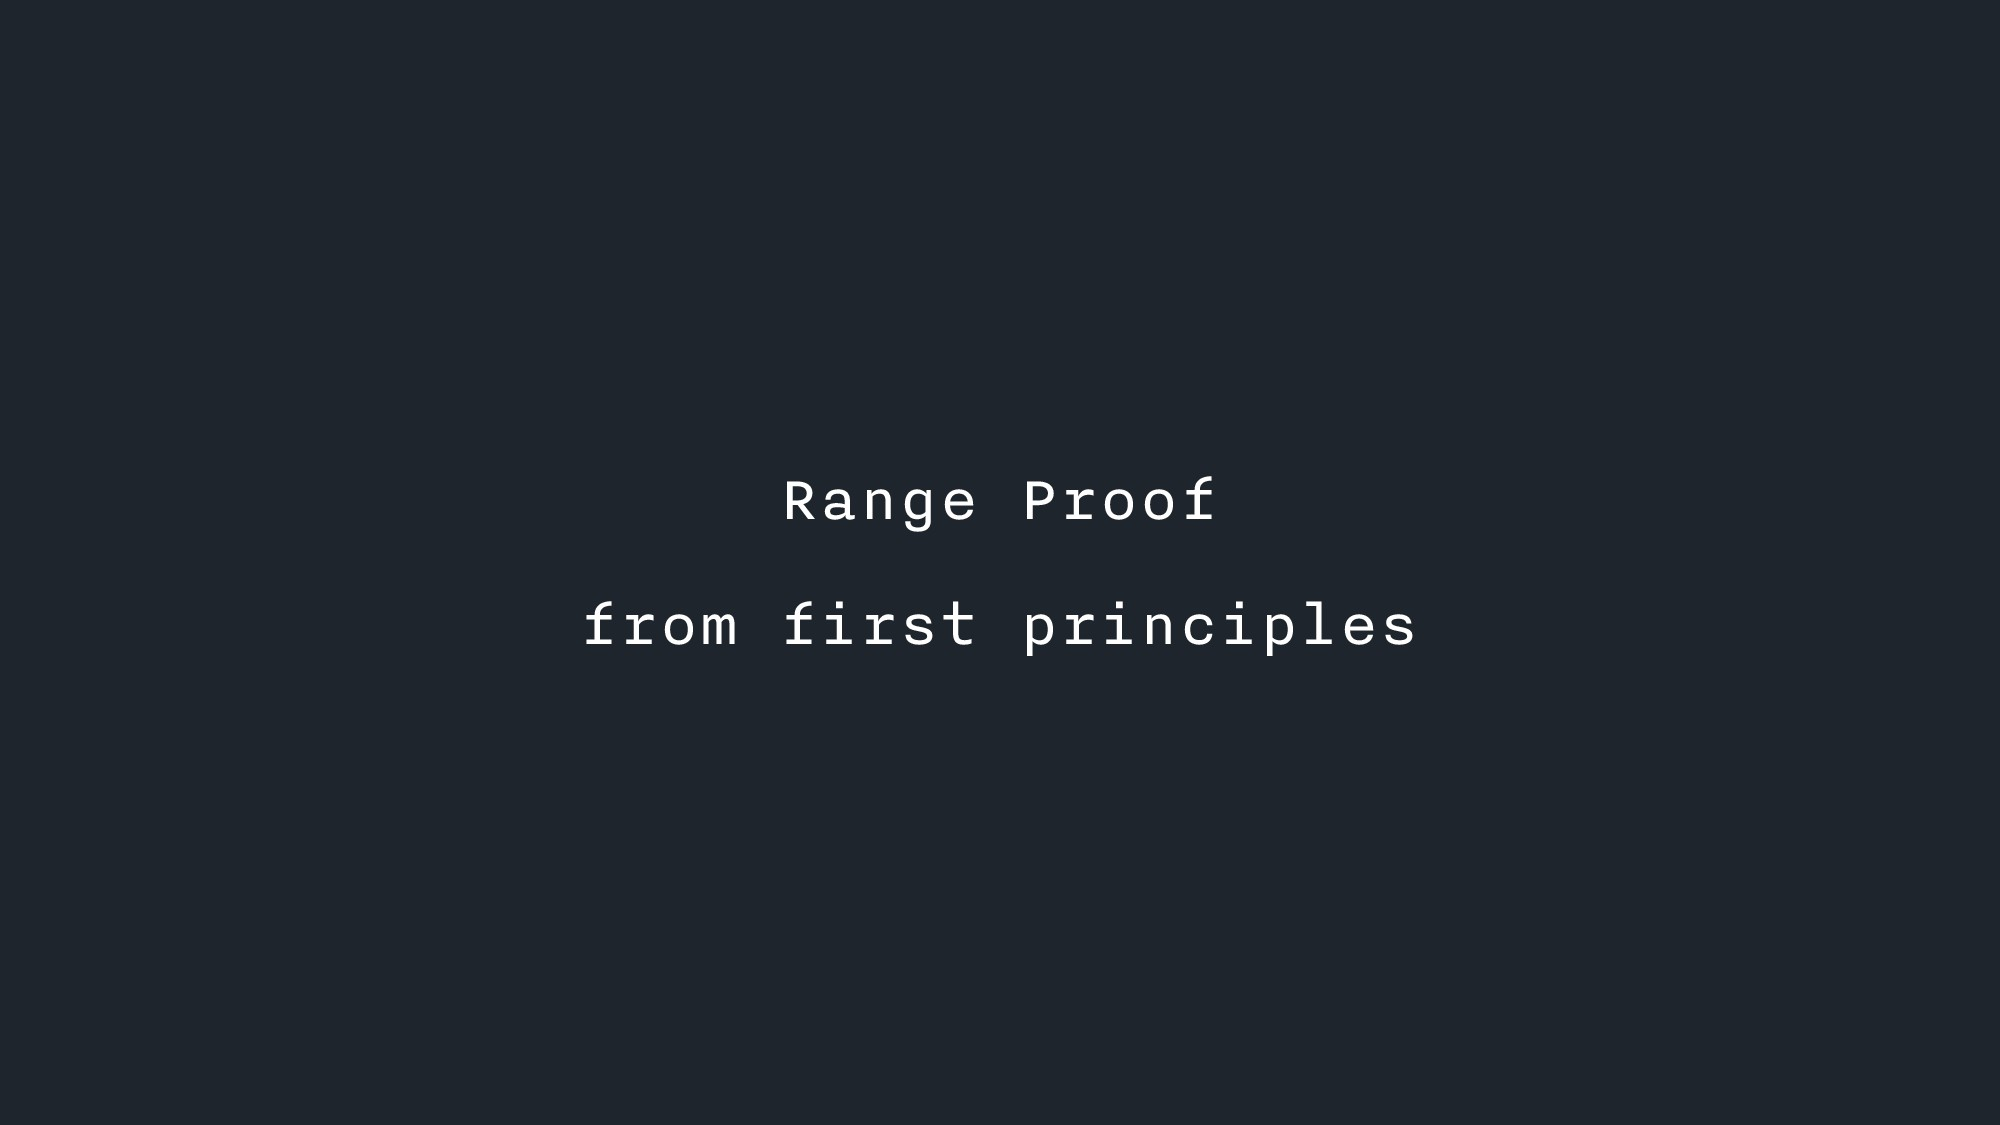 Range Proof from first principles